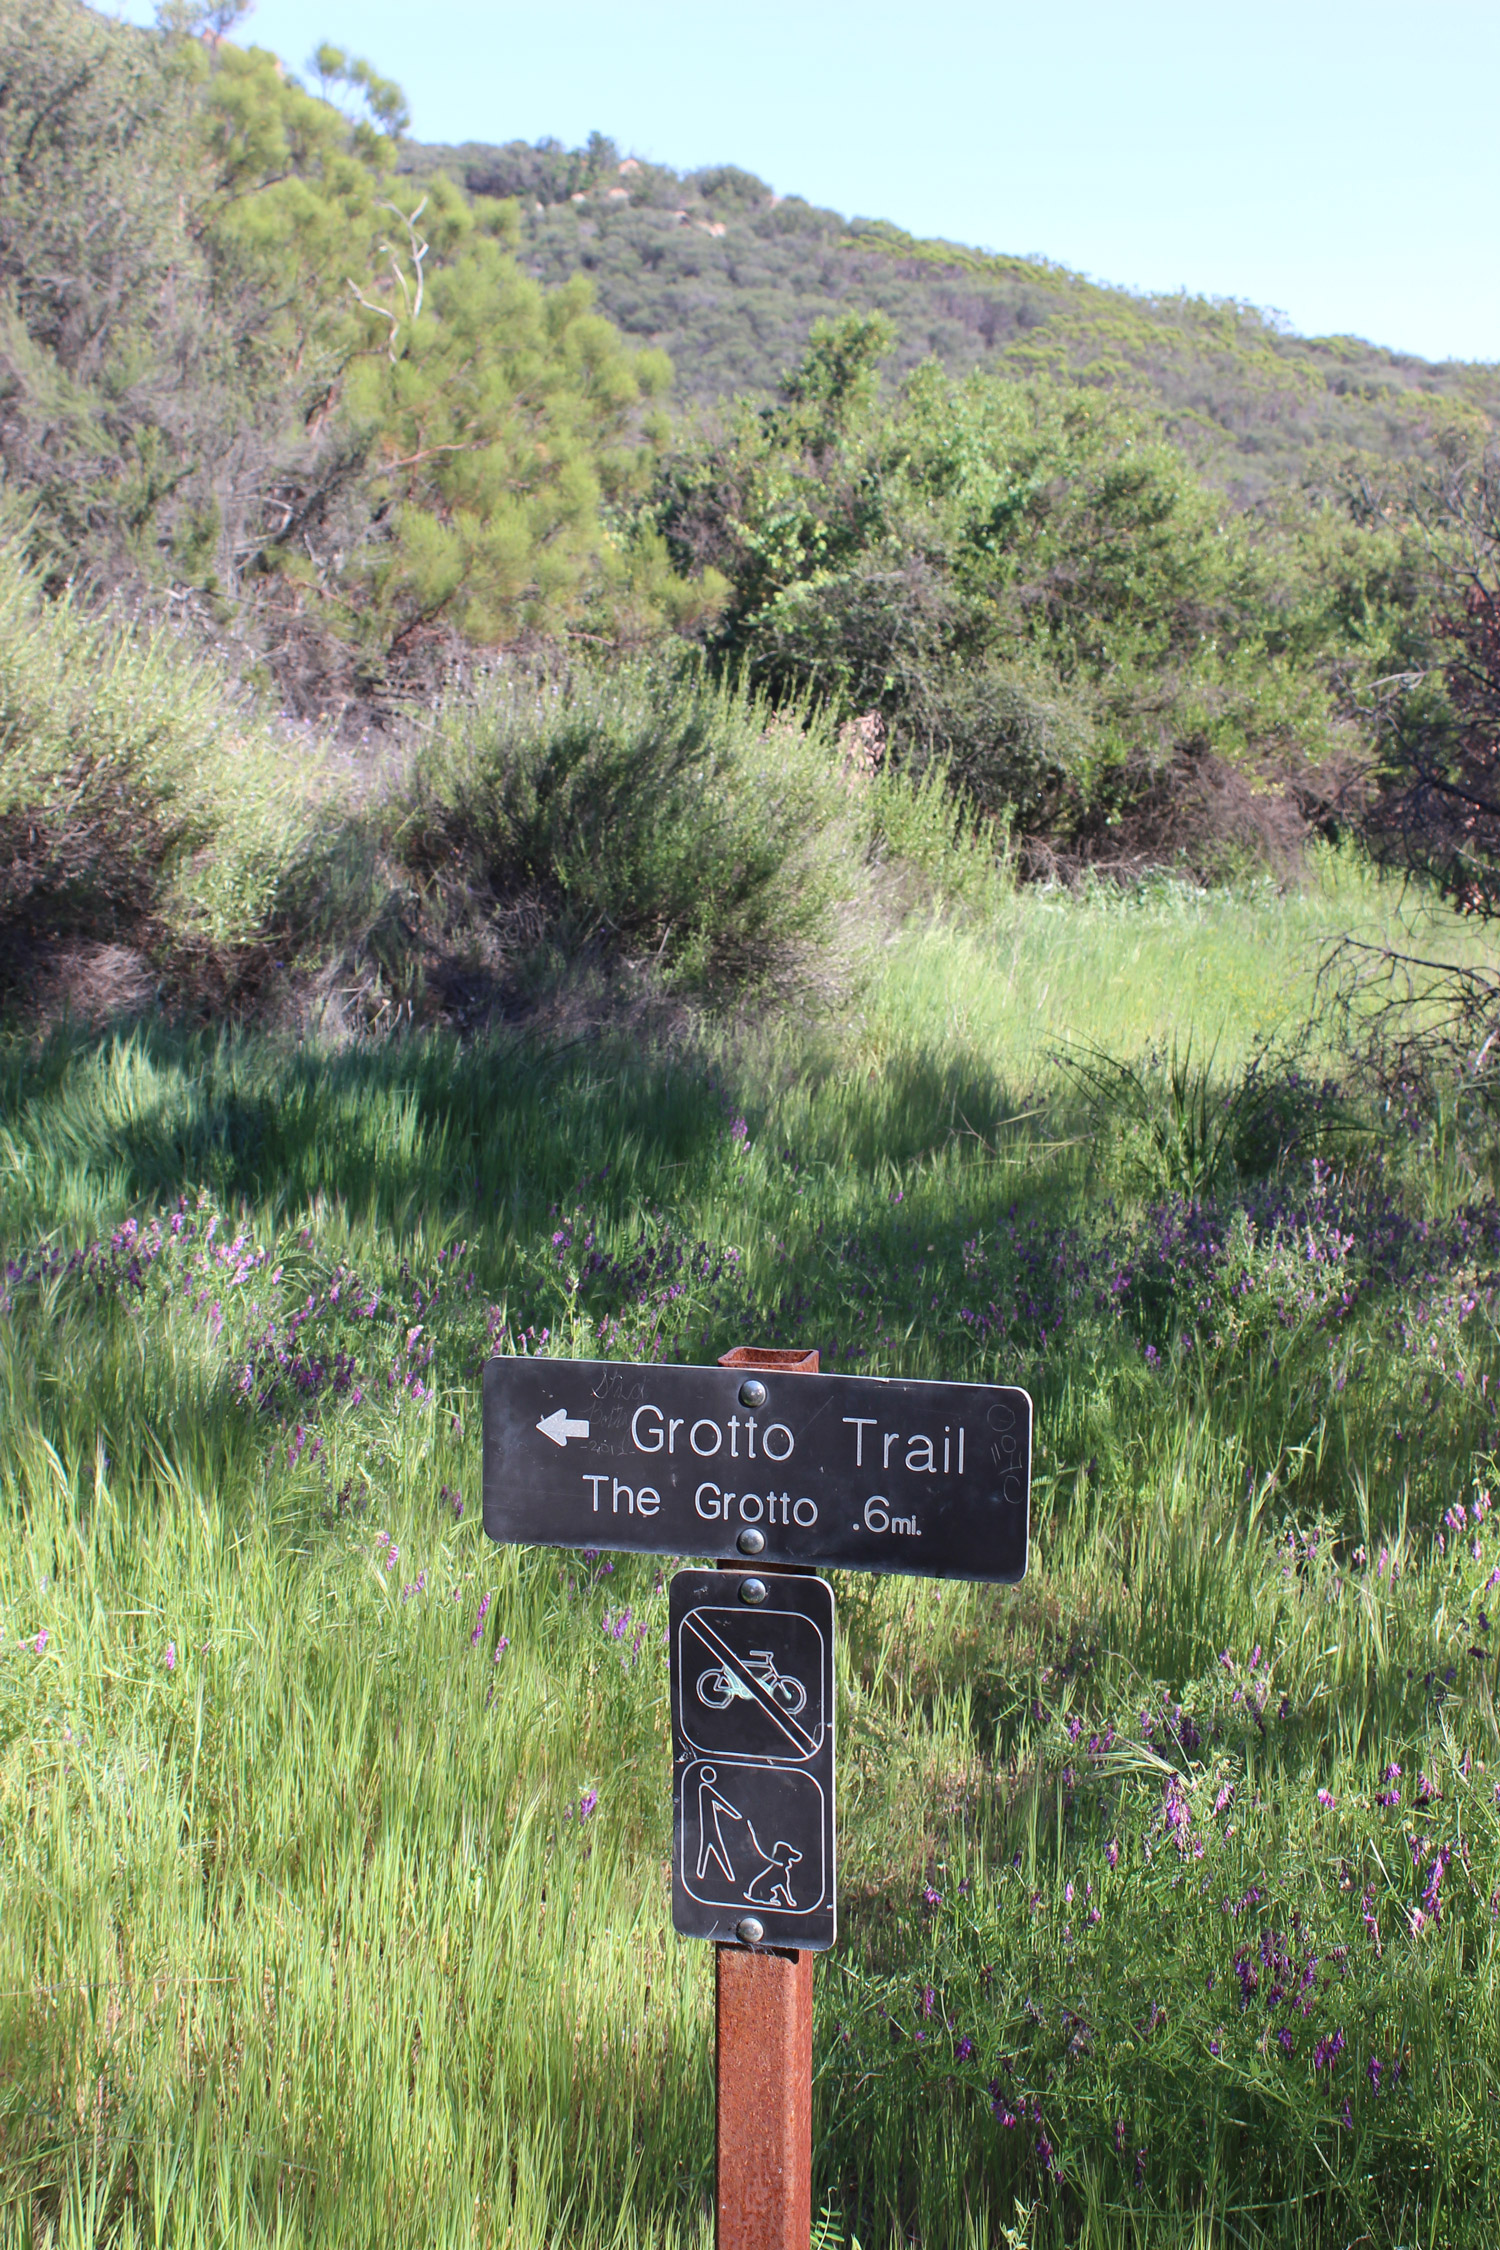 Sign to the Grotto Trail surrounded by lavender flowers and grass.